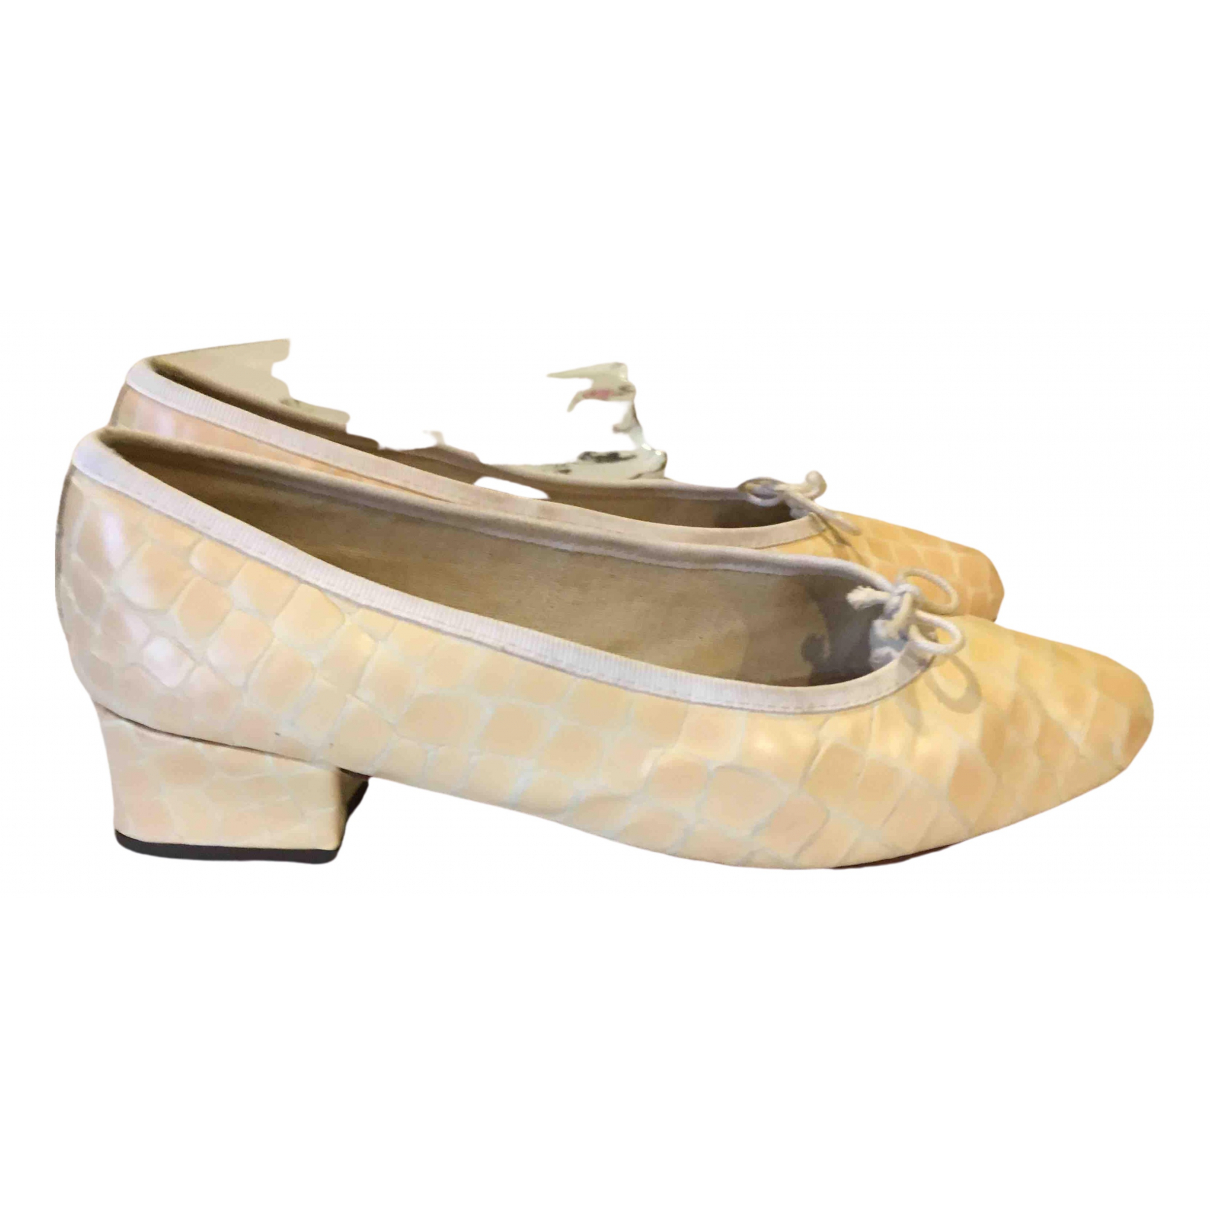 Repetto \N Ballerinas in  Ecru Leder